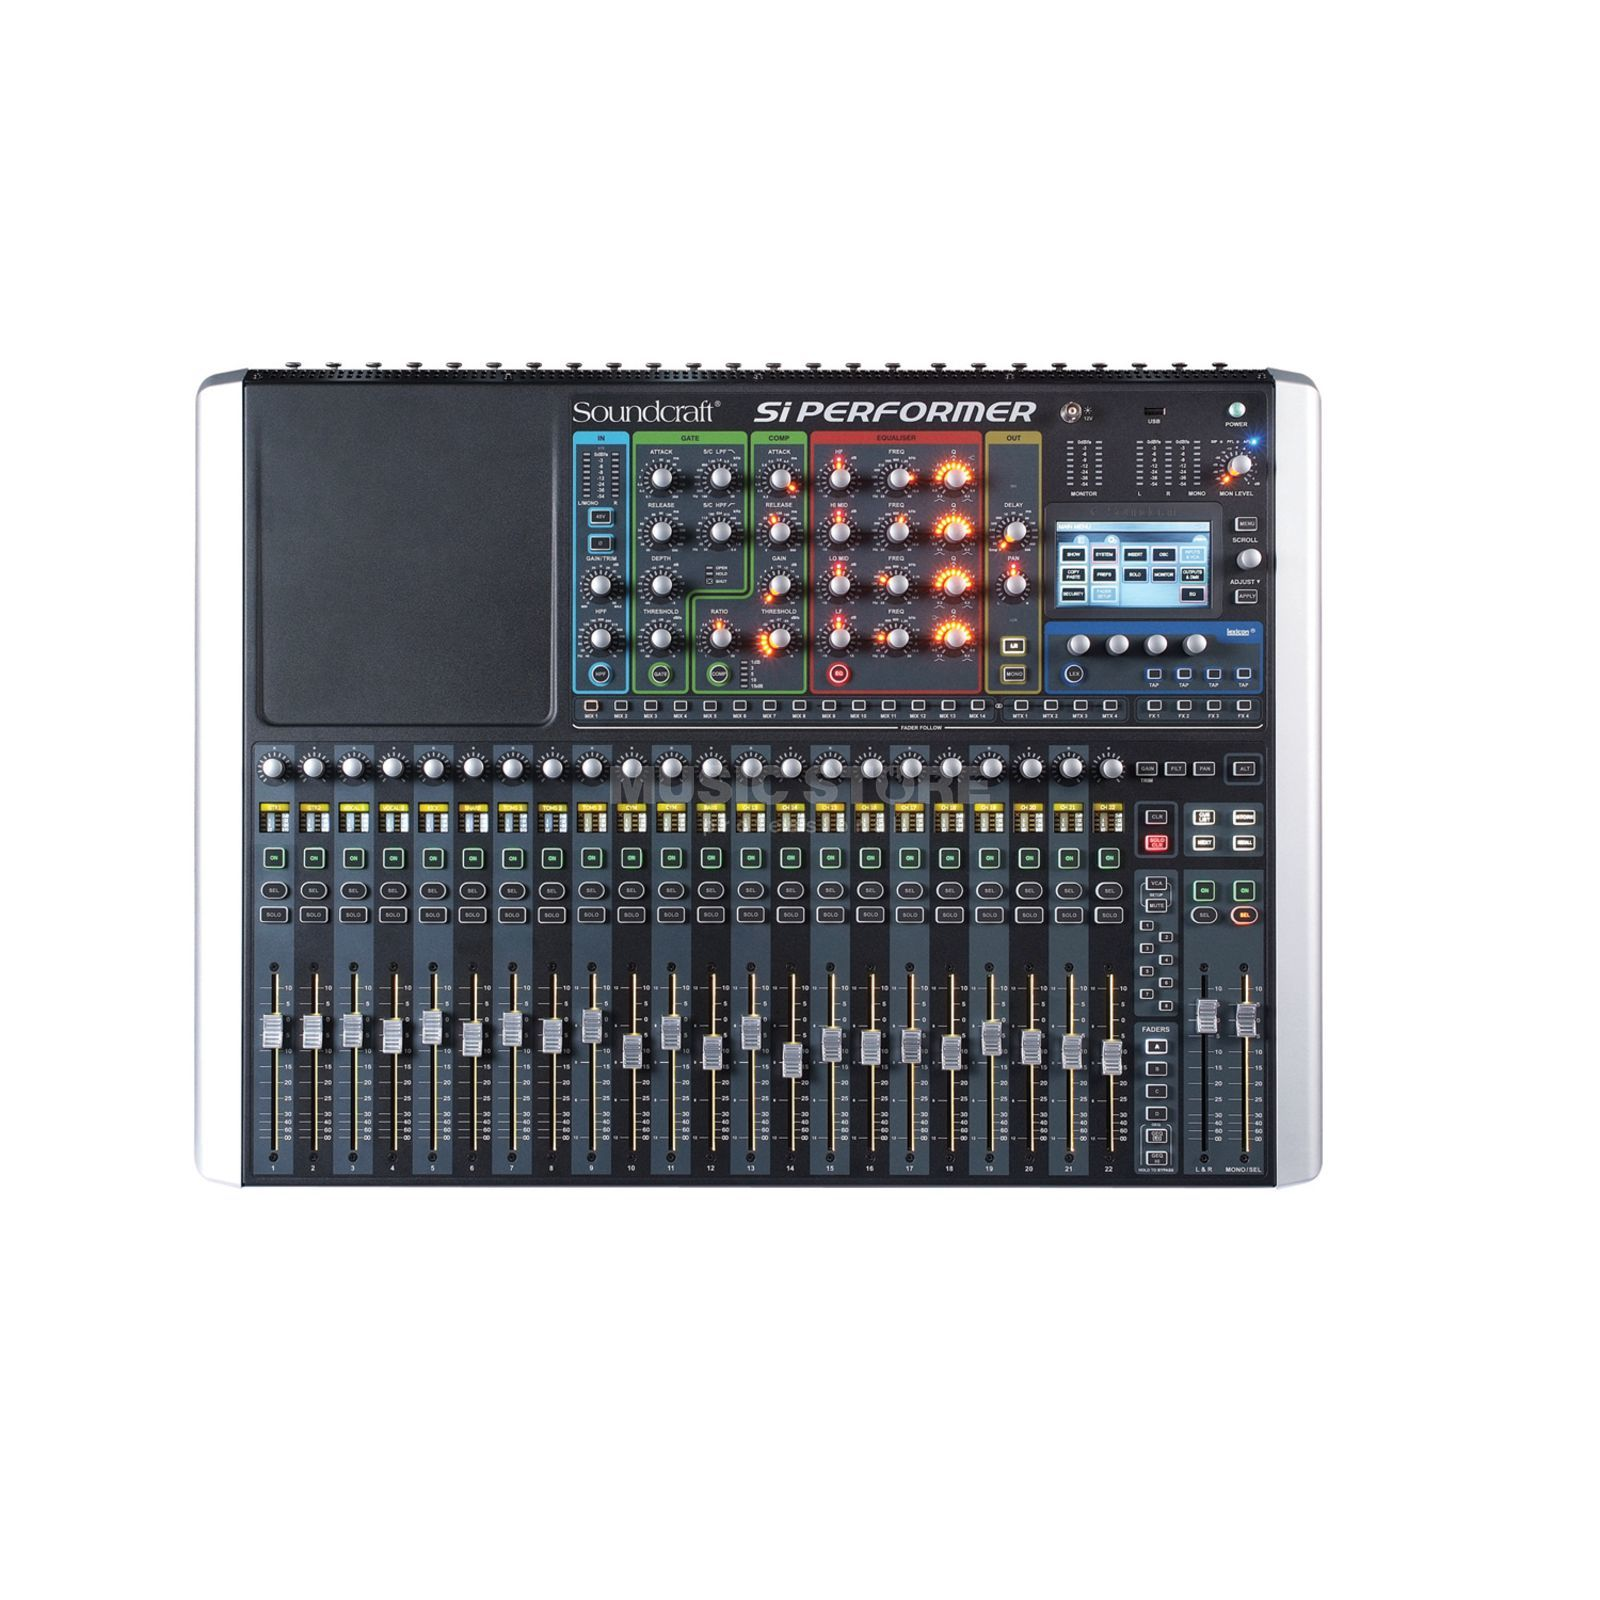 Soundcraft Si Performer 2 mit DMX512 Port, 24 Fader Produktbild